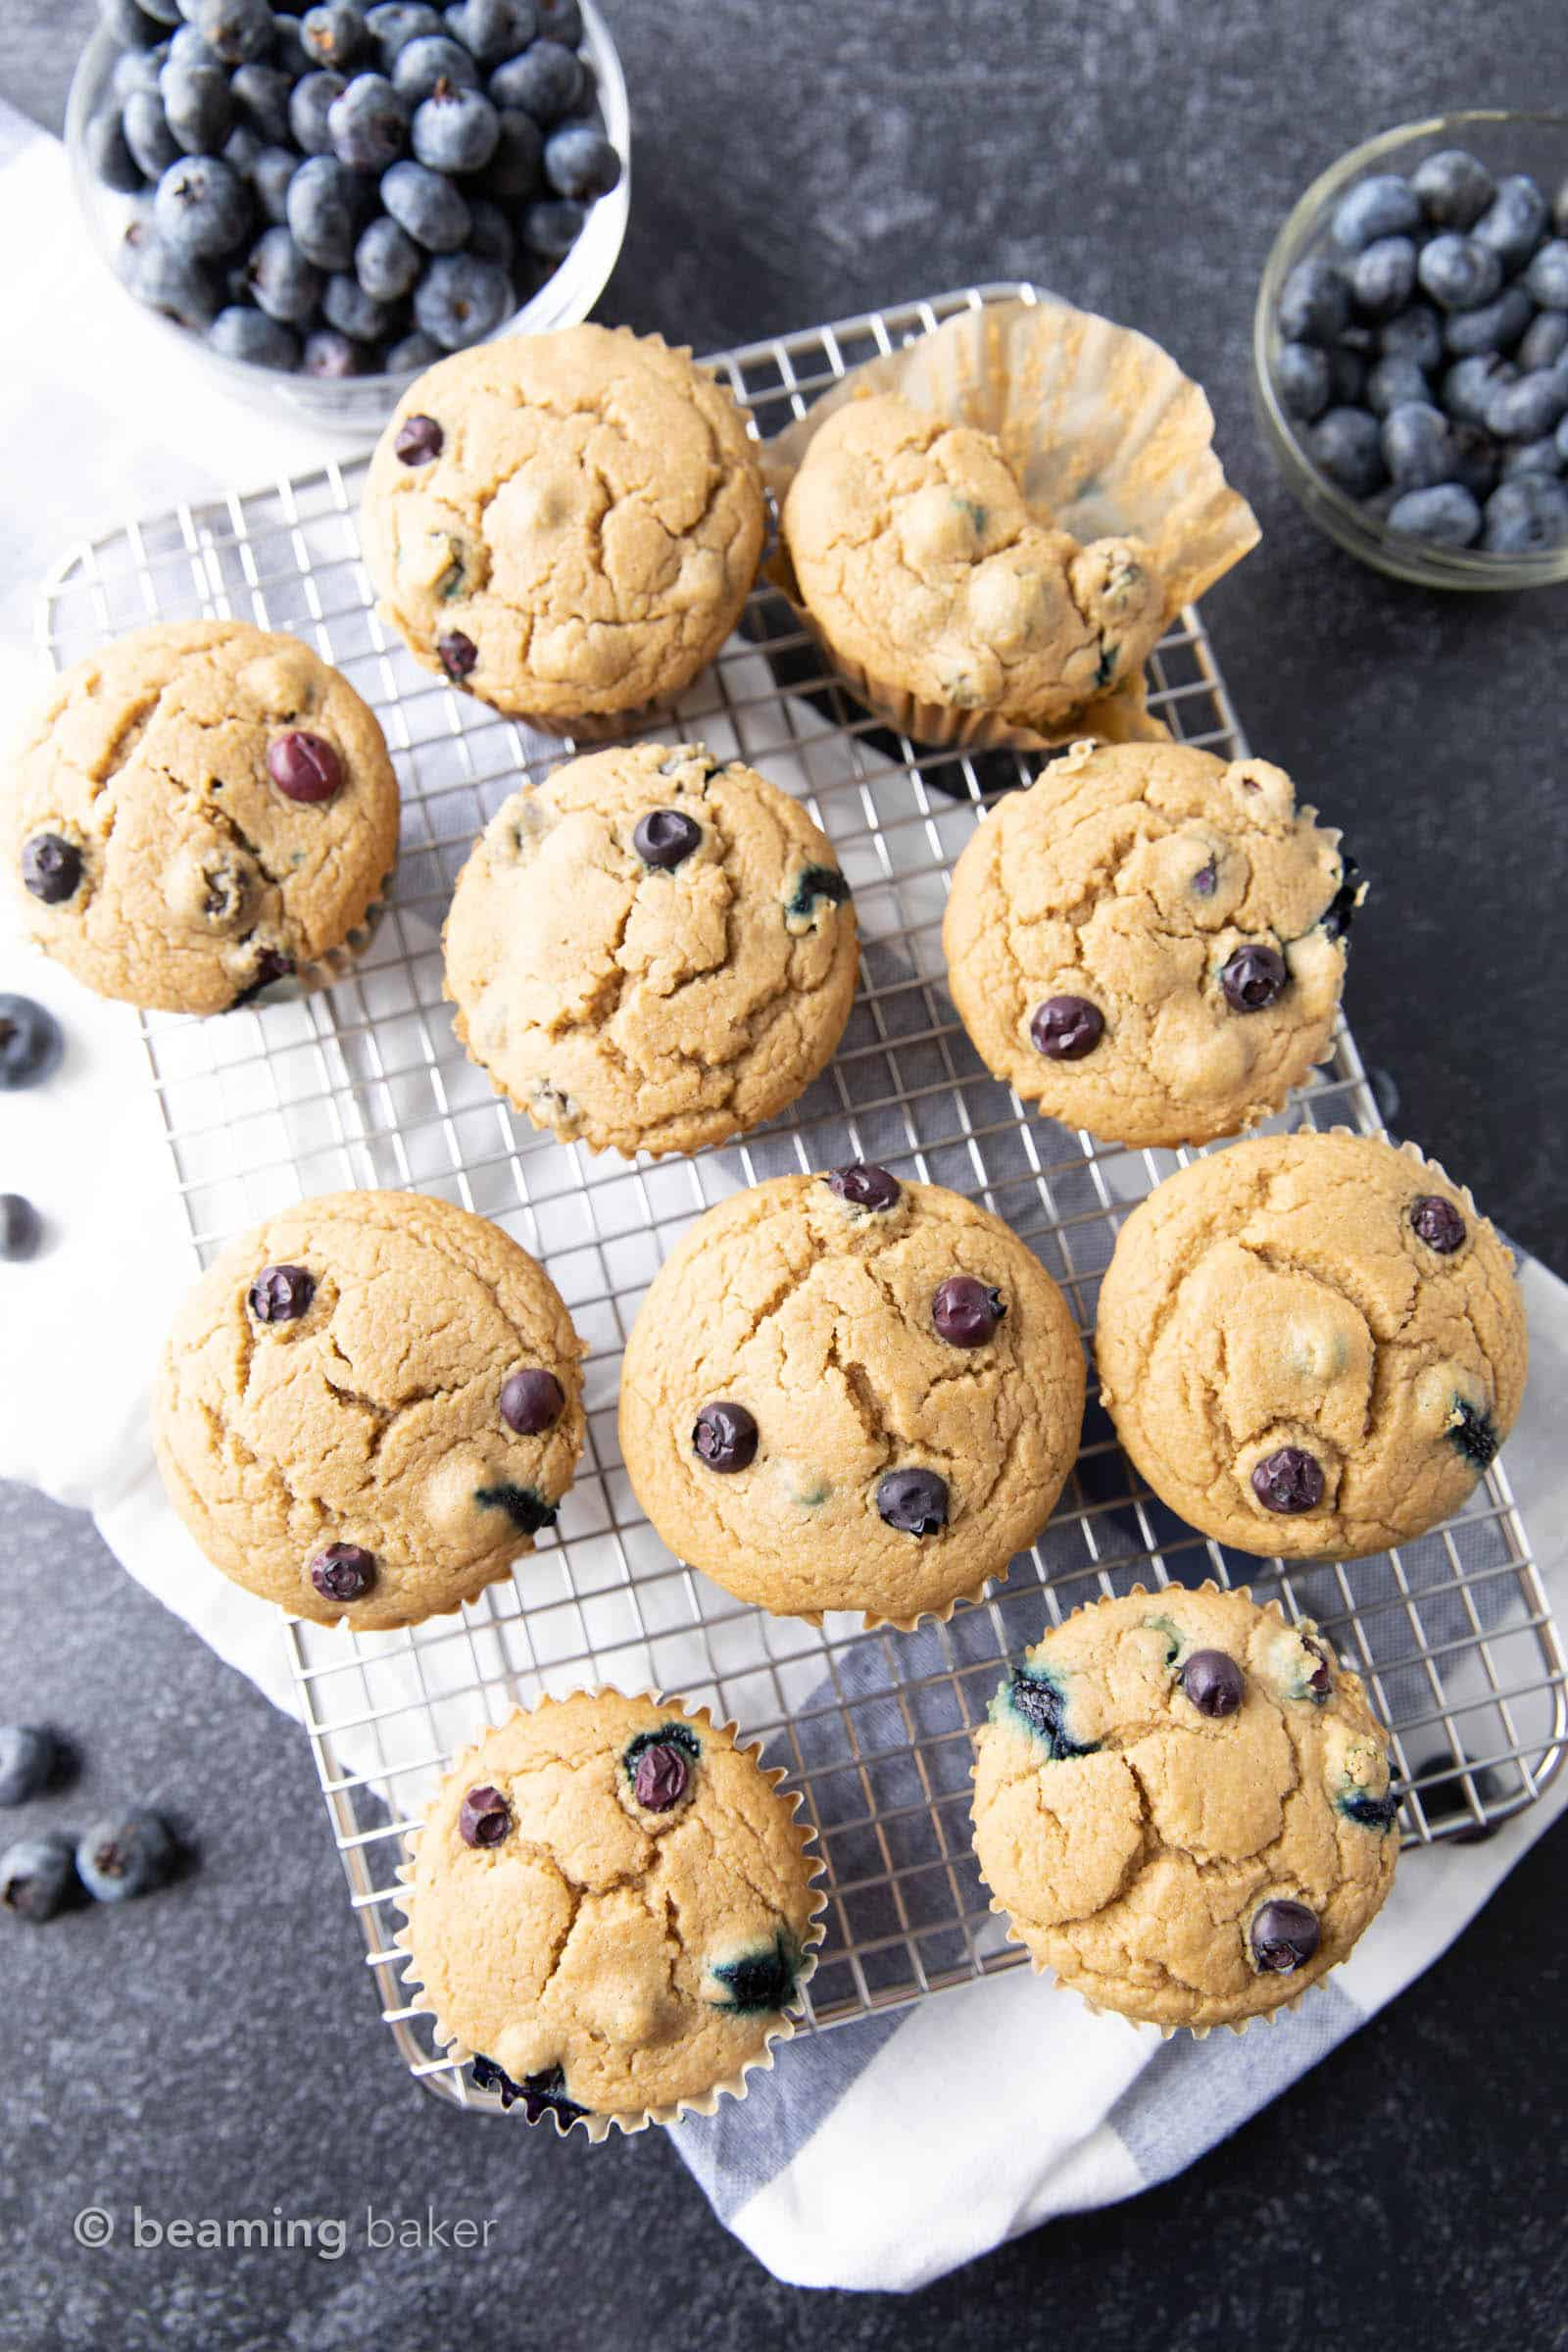 Easy Vegan Blueberry Muffins Recipe: this soft 'n moist vegan blueberry muffins recipe yields fluffy, bright blueberry muffins. Gluten Free, Dairy-Free. #Vegan #Blueberry #Muffins #GlutenFree | Recipe at BeamingBaker.com